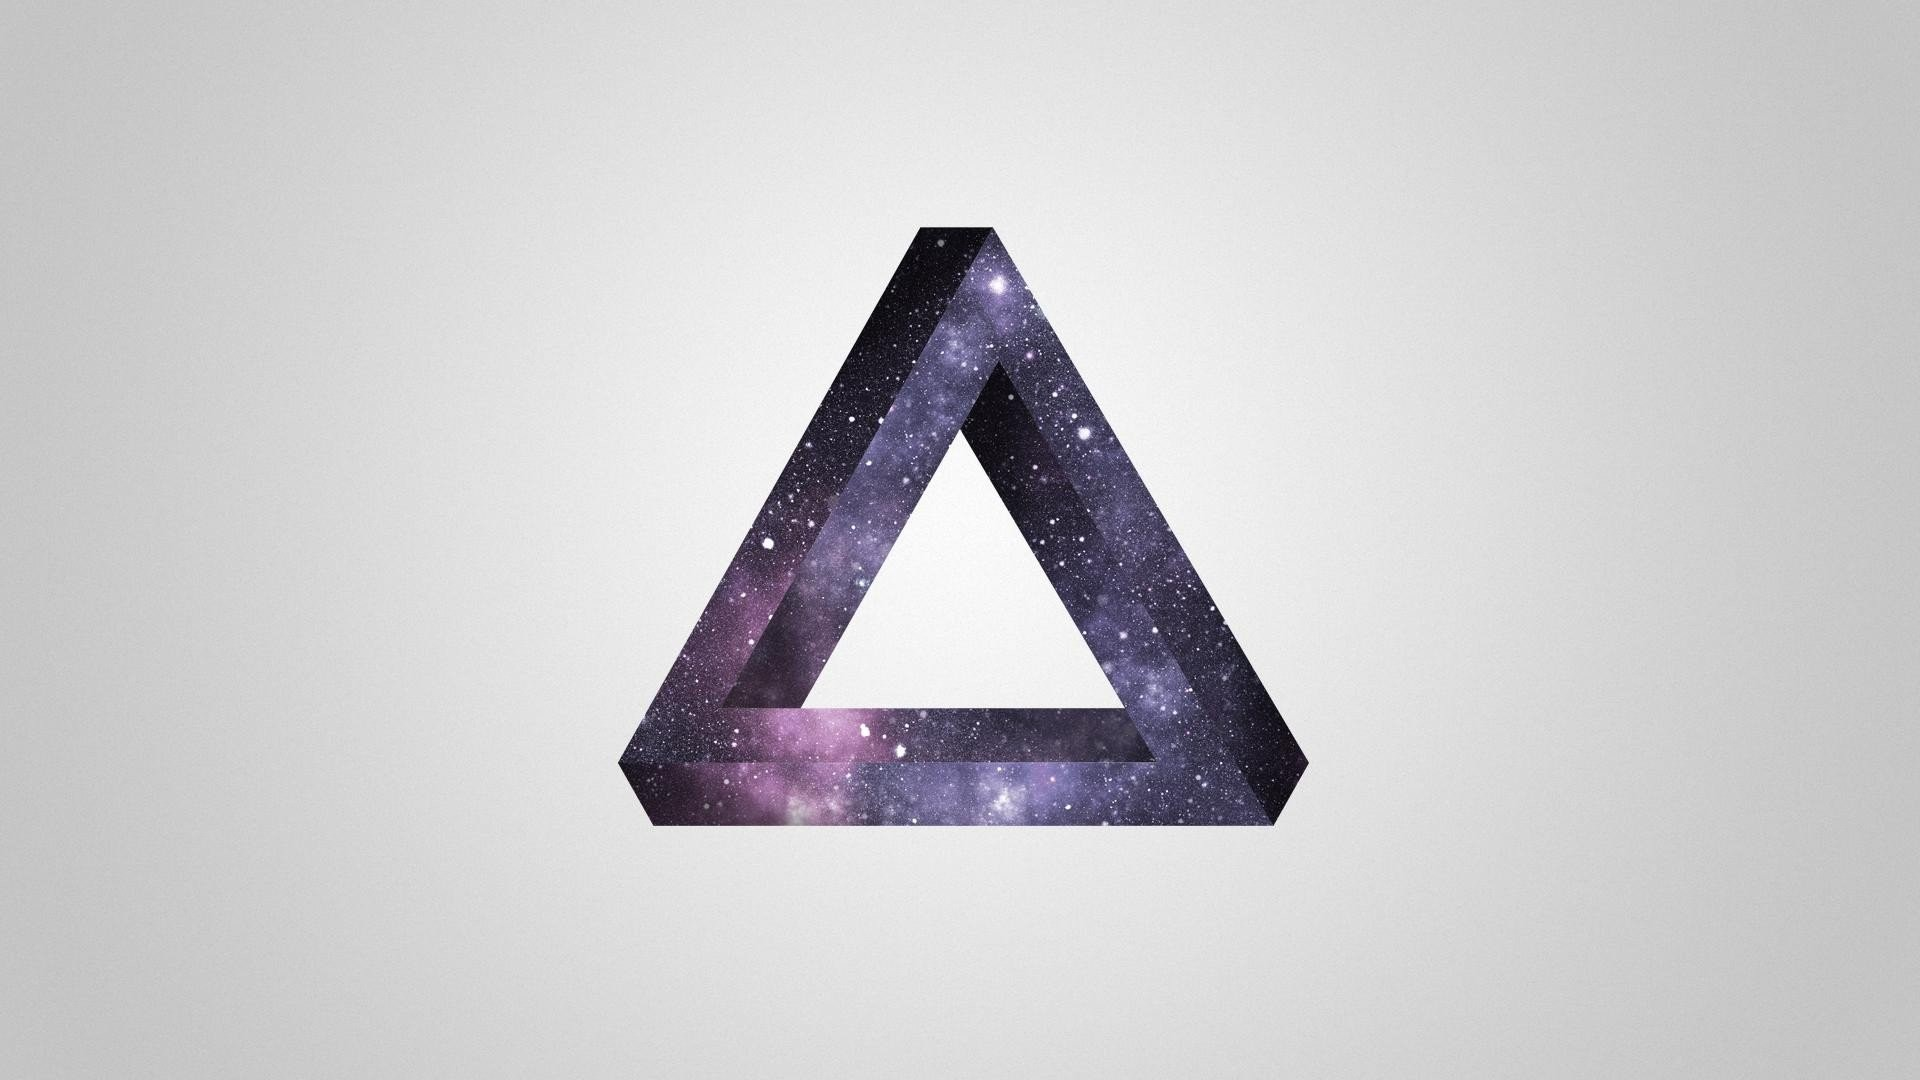 1920x1080 Avicii, Penrose triangle Wallpapers HD / Desktop and Mobile Backgrounds